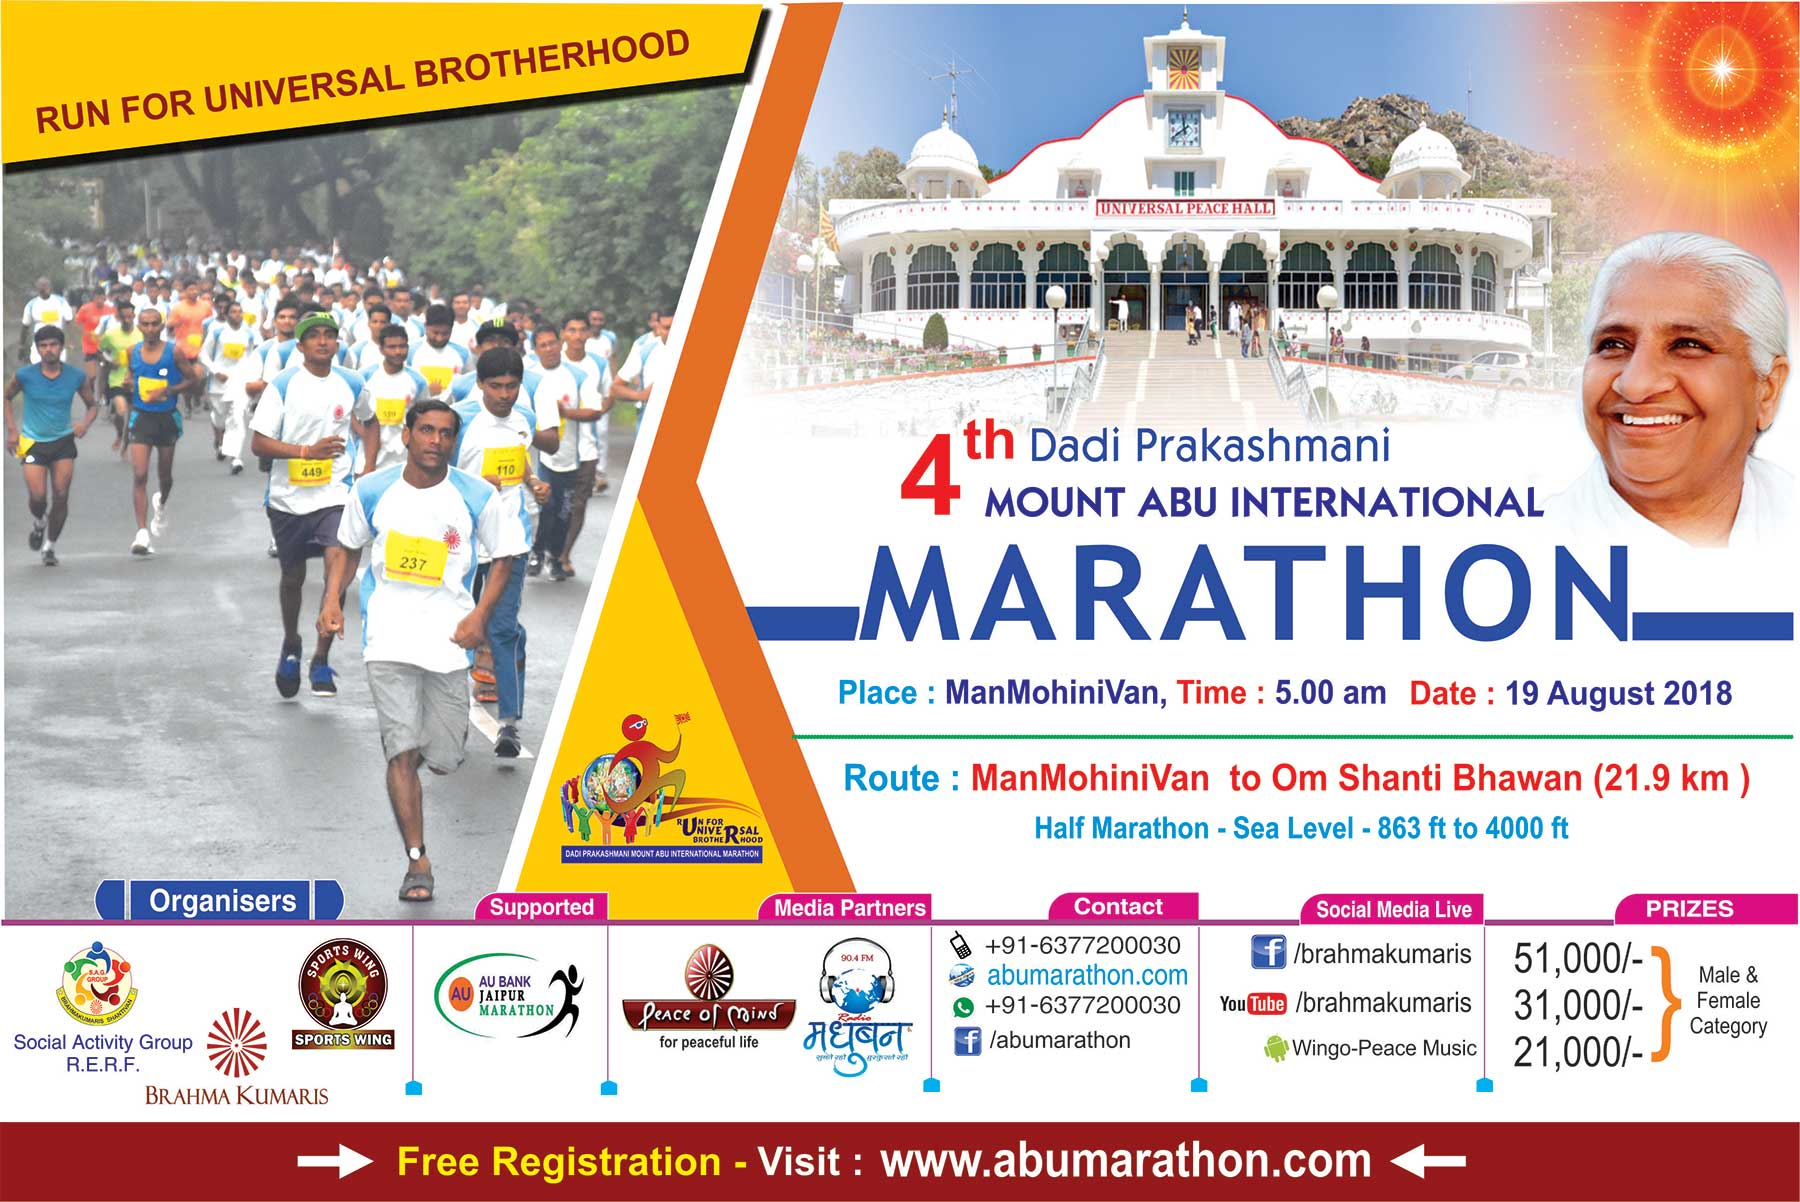 4th Dadi Prakashmani International Mount Abu Marathon on August 19th